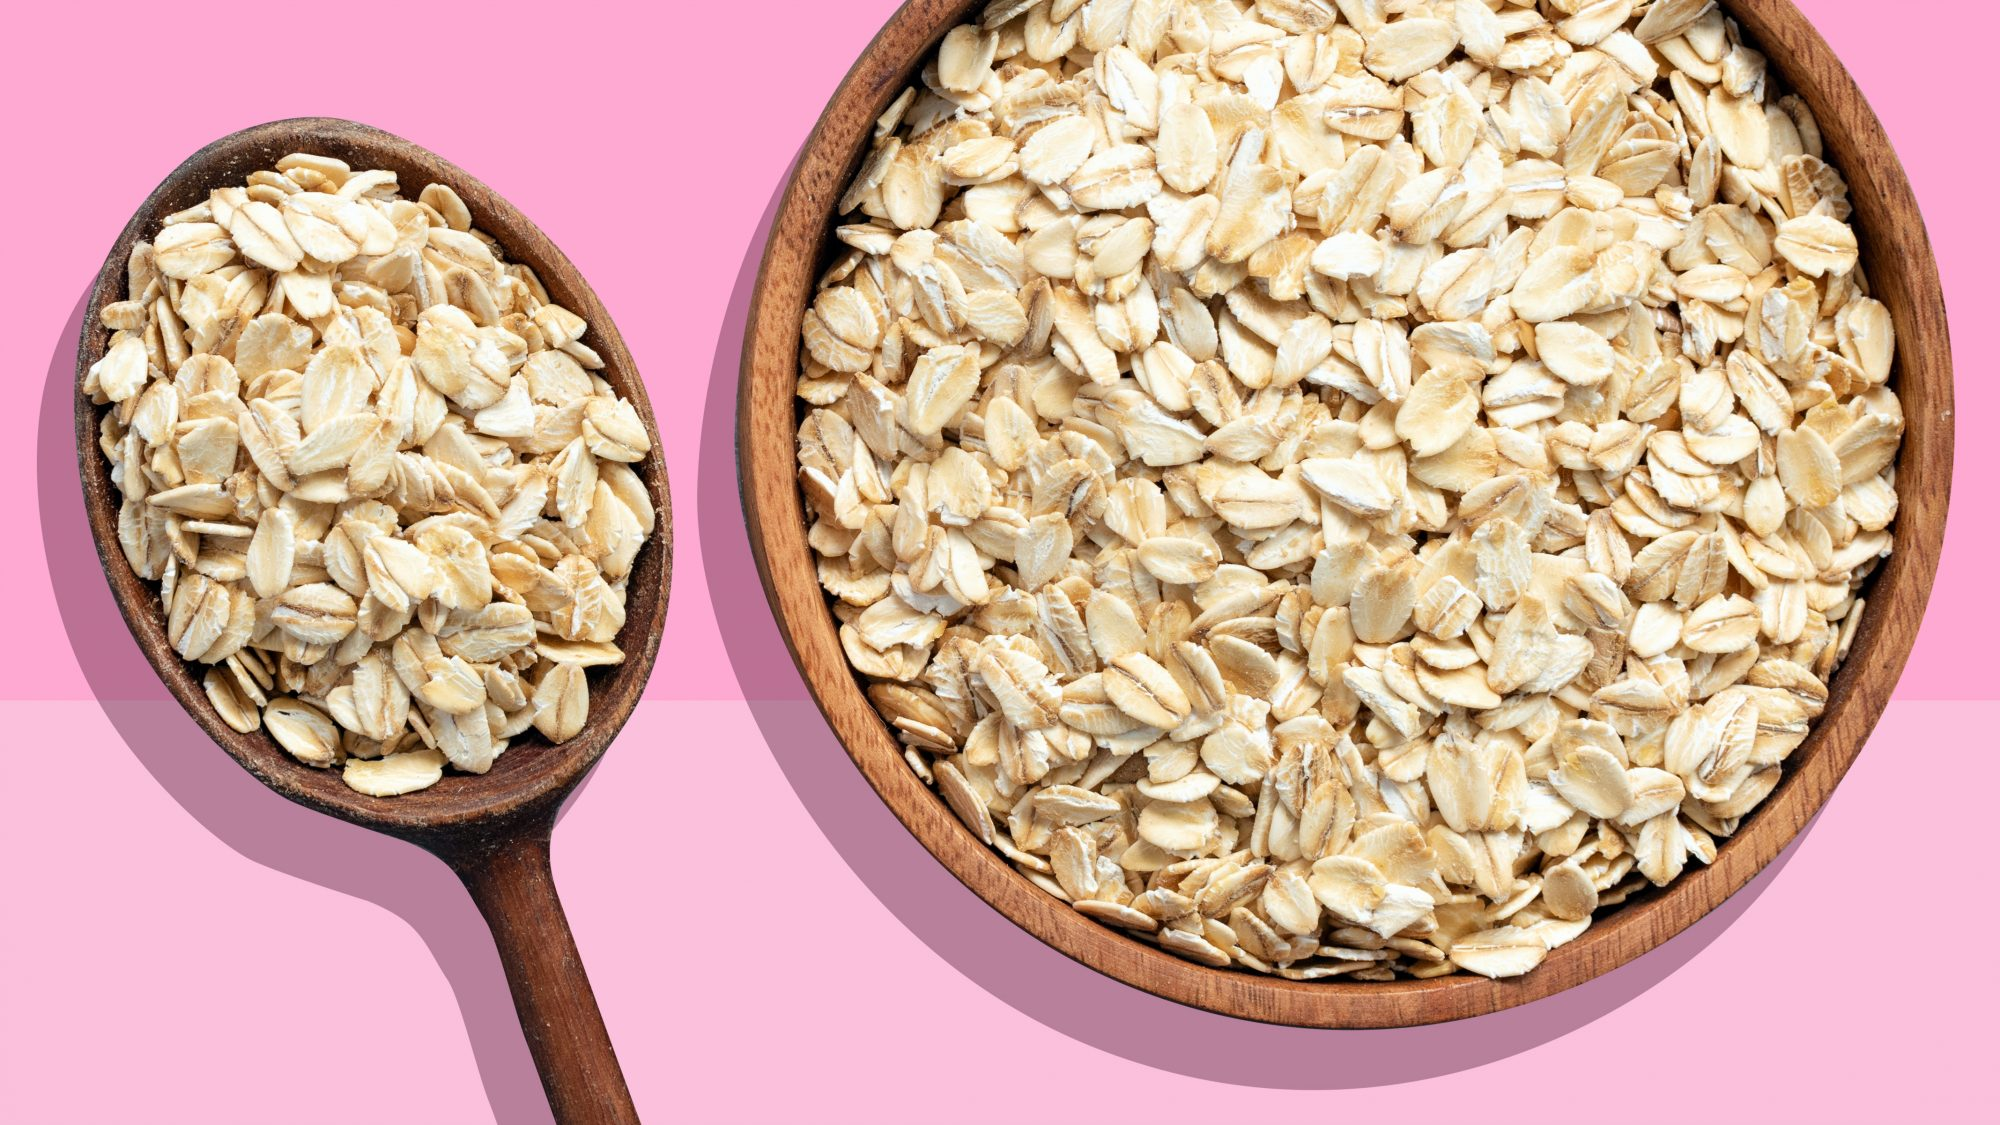 Oats on a pink background